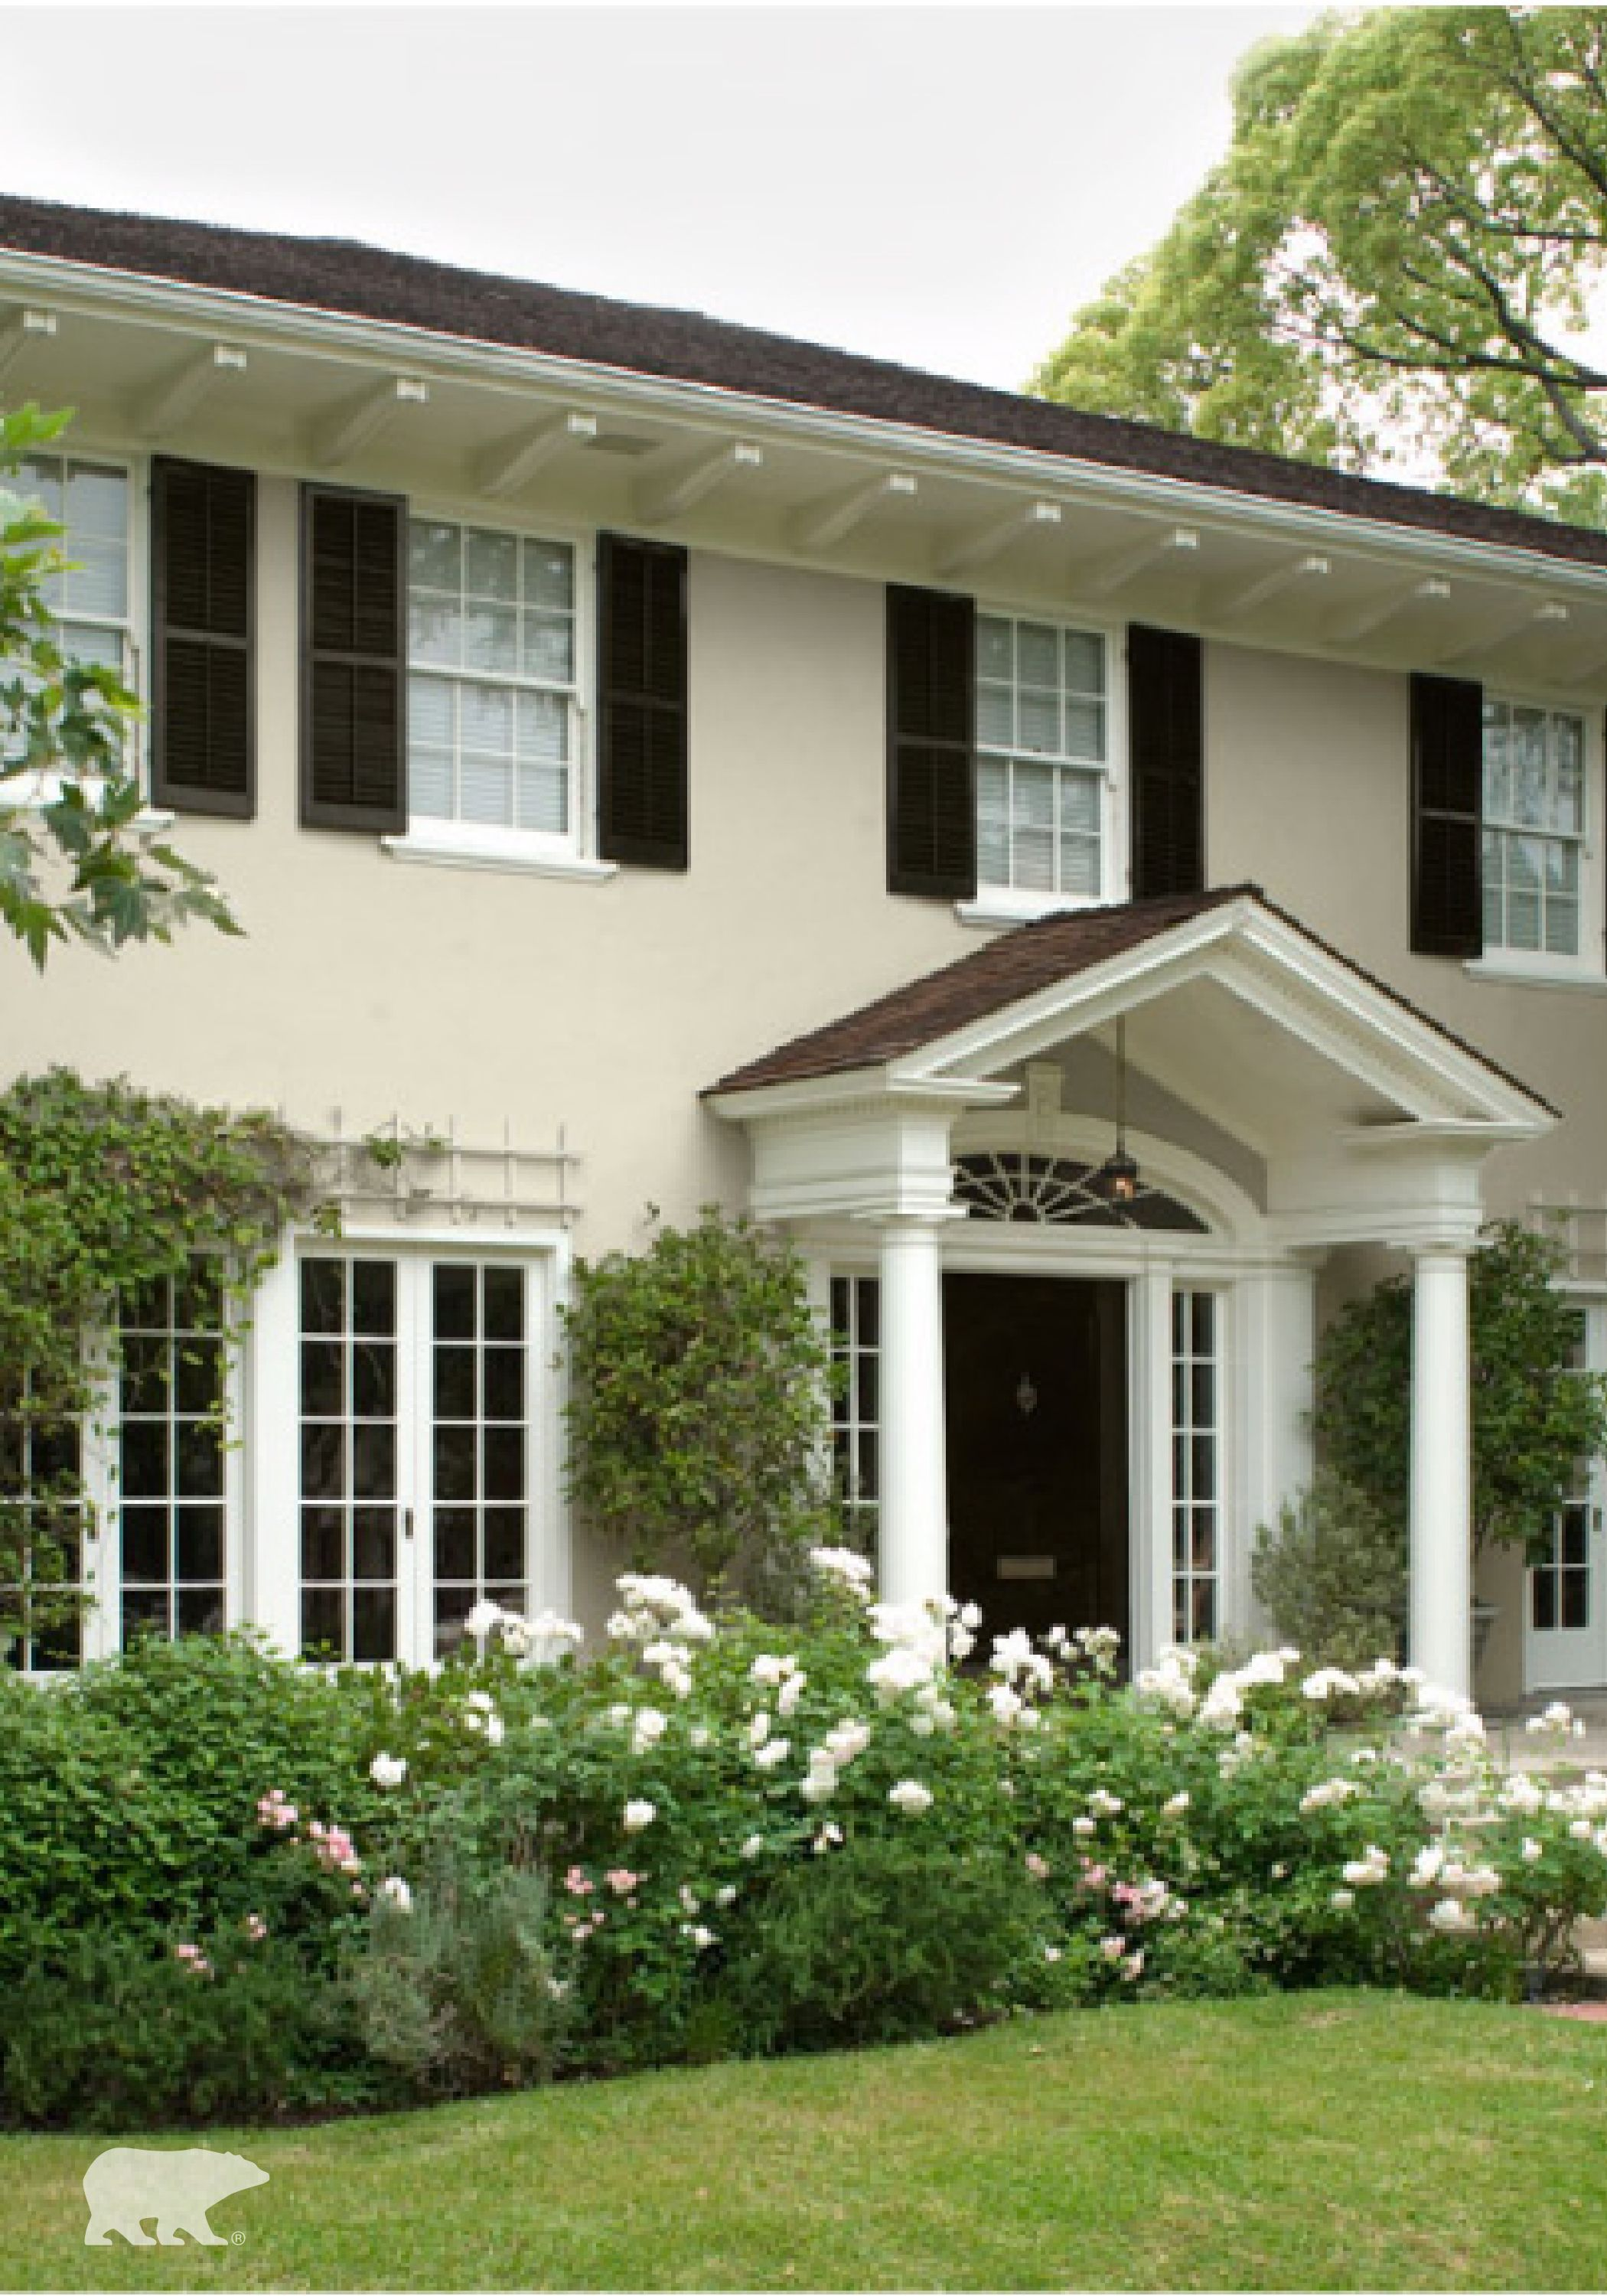 From Polished Landscaping To The Perfect Color Scheme These 6 Stately Home Exteriors Are Sure